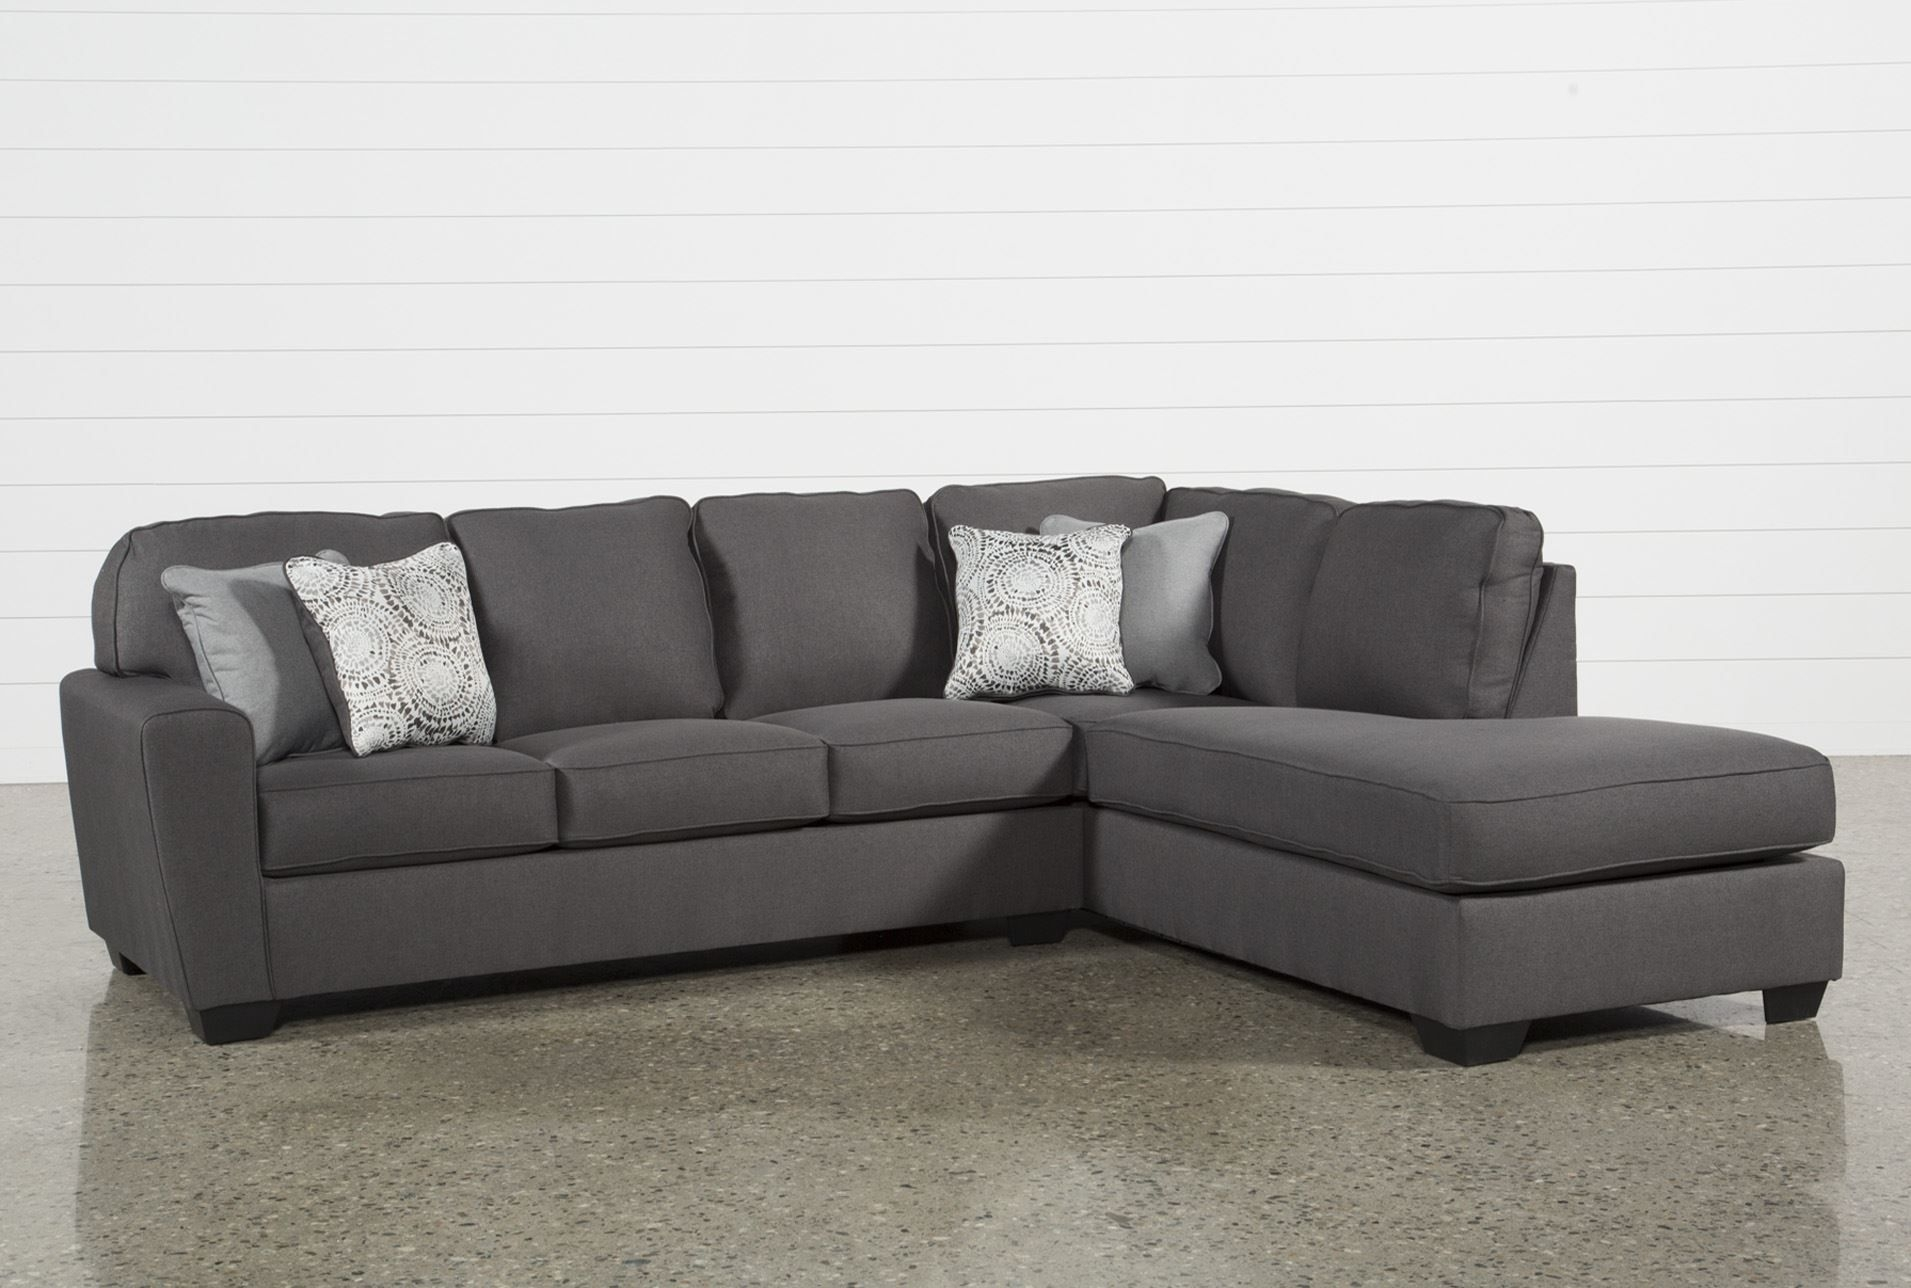 Mcdade Graphite 2 Piece Sectional W/raf Chaise | Products for Mcculla Sofa Sectionals With Reversible Chaise (Image 21 of 30)